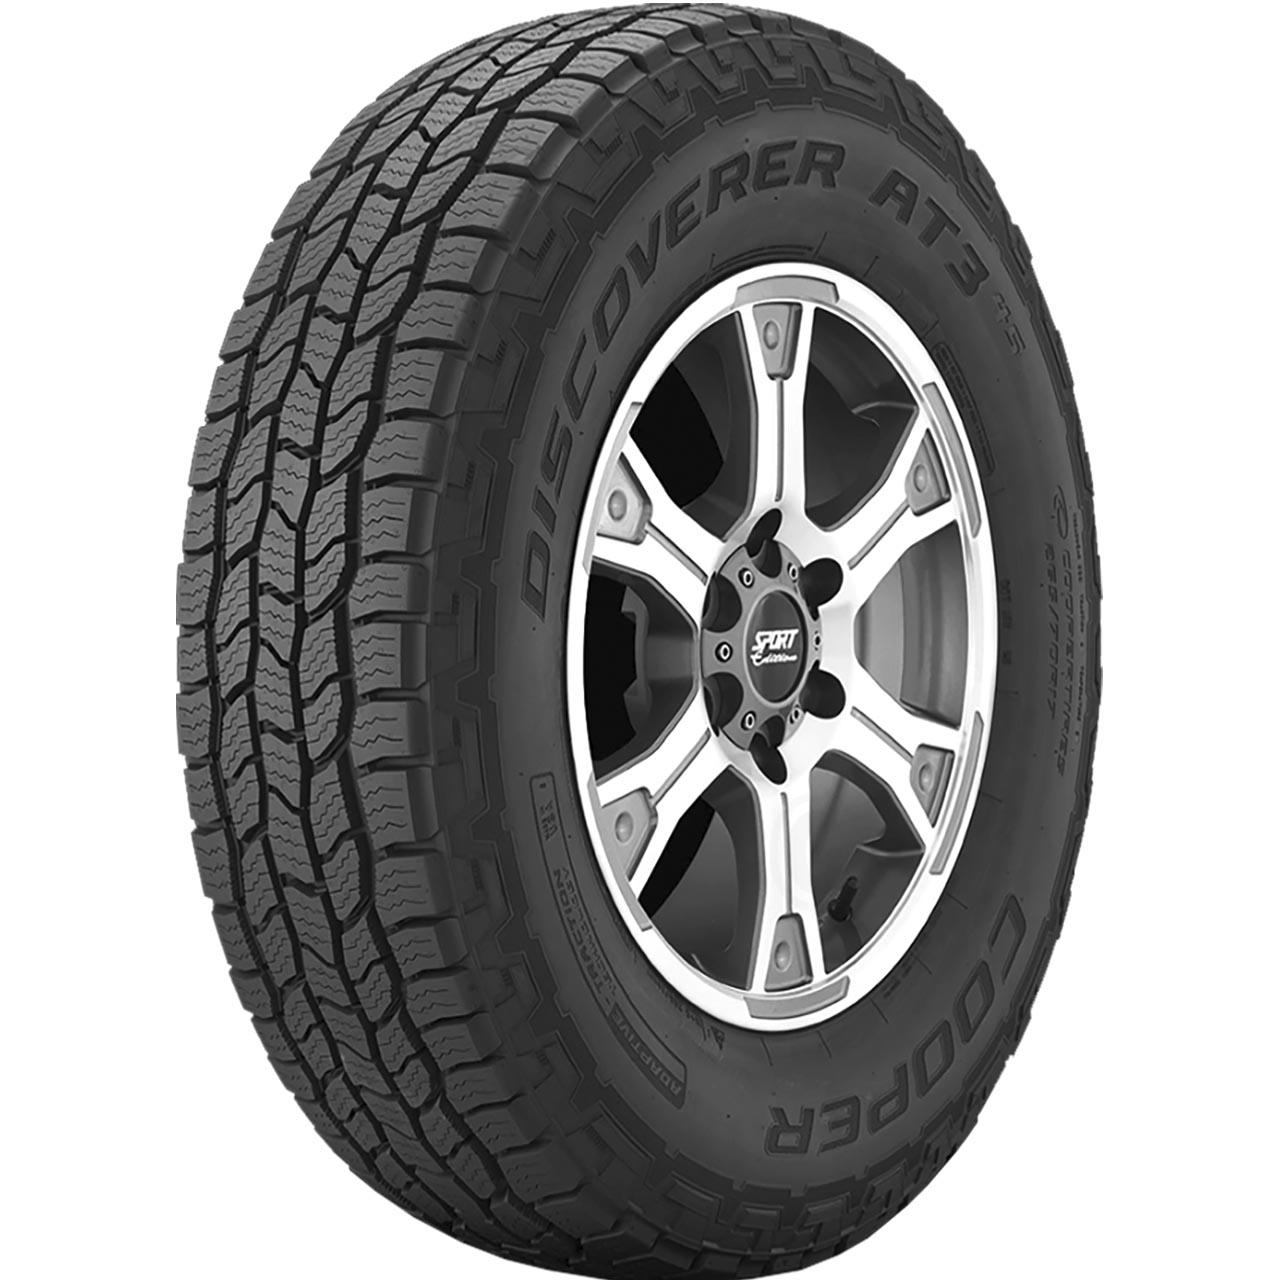 Cooper Discoverer AT3 4S 245/70R16 111T XL OWL